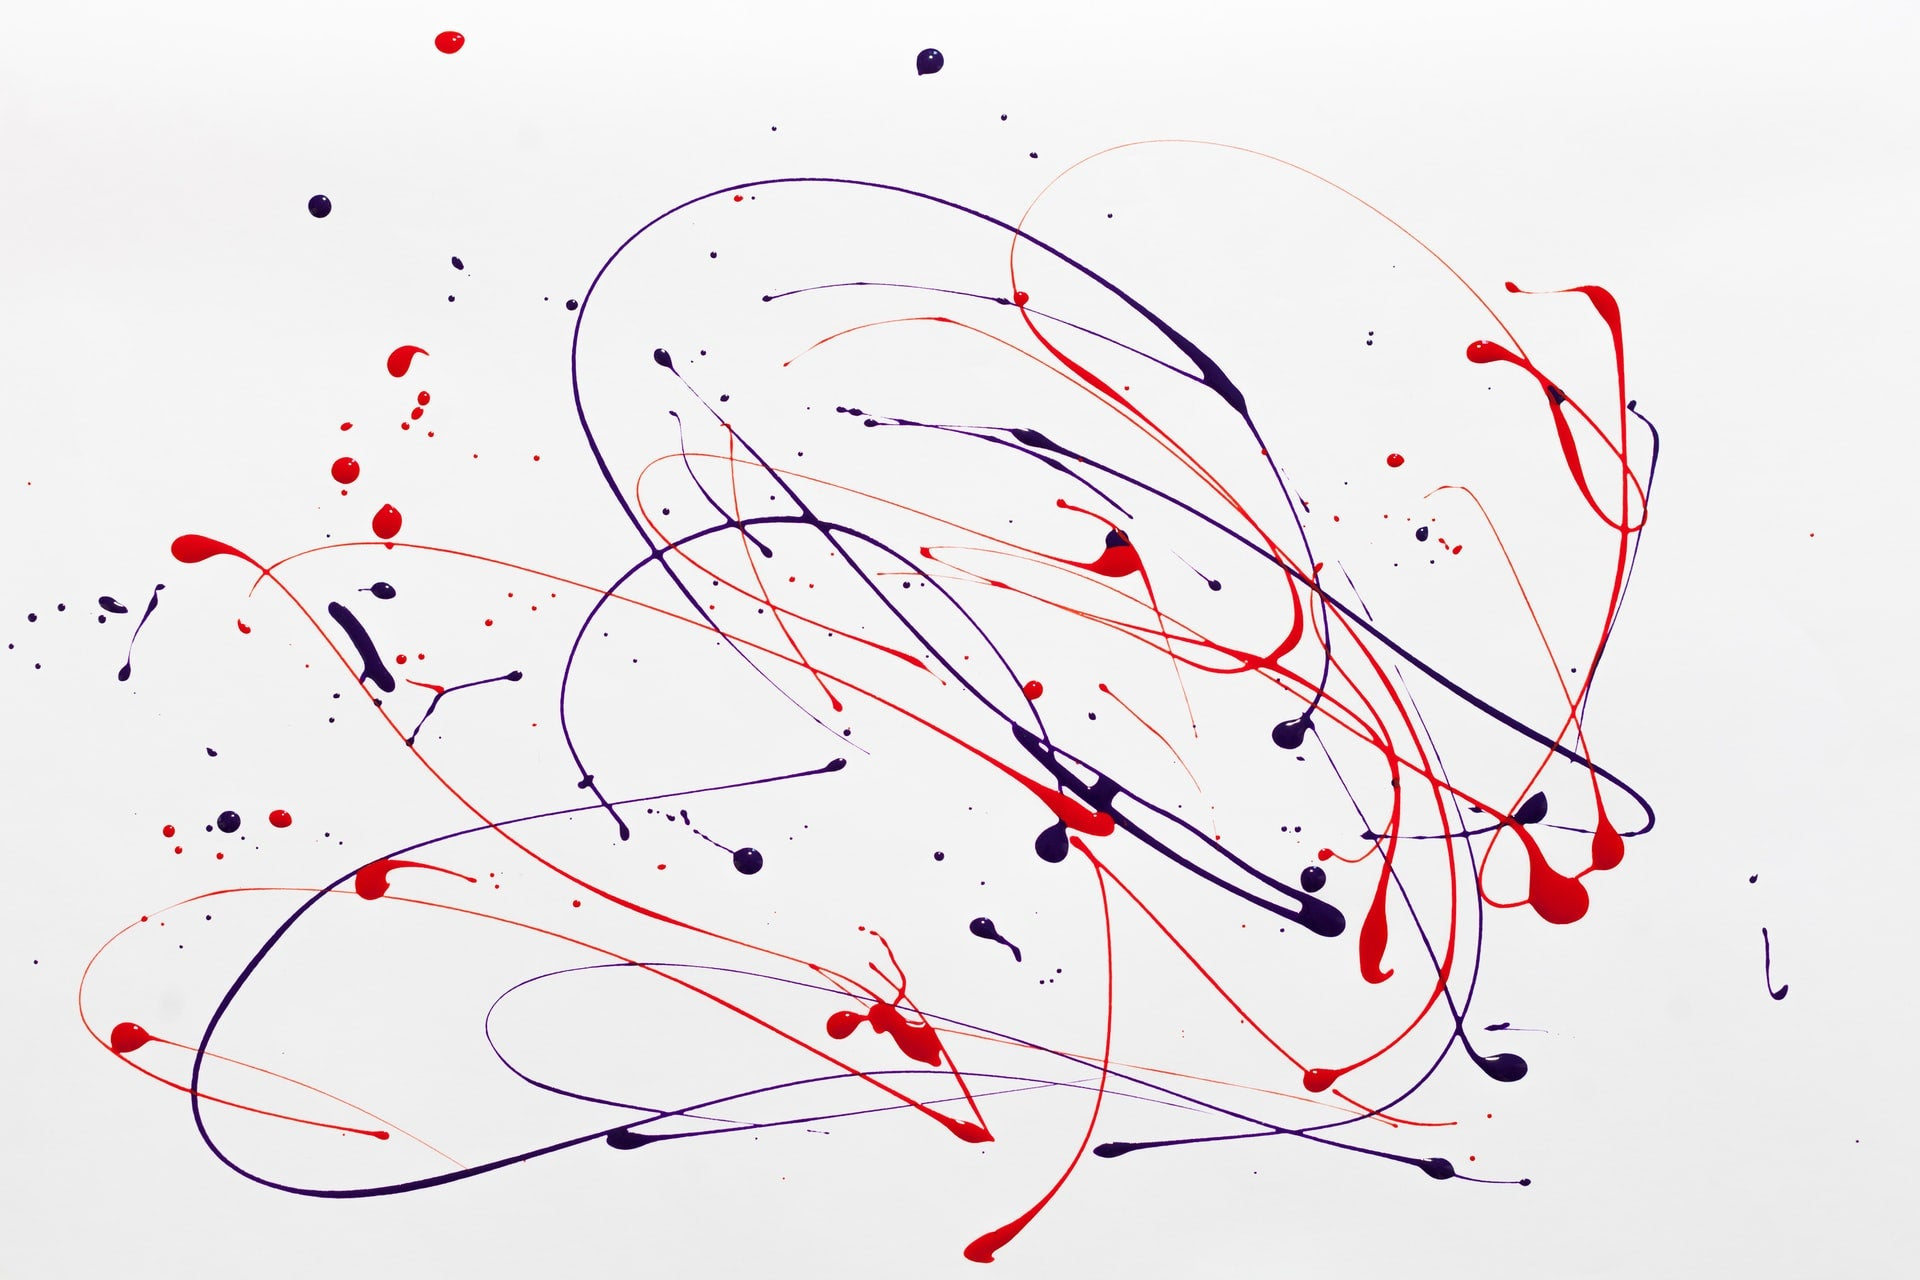 Red and blue streaks of paint form an abstract painting on a white surface